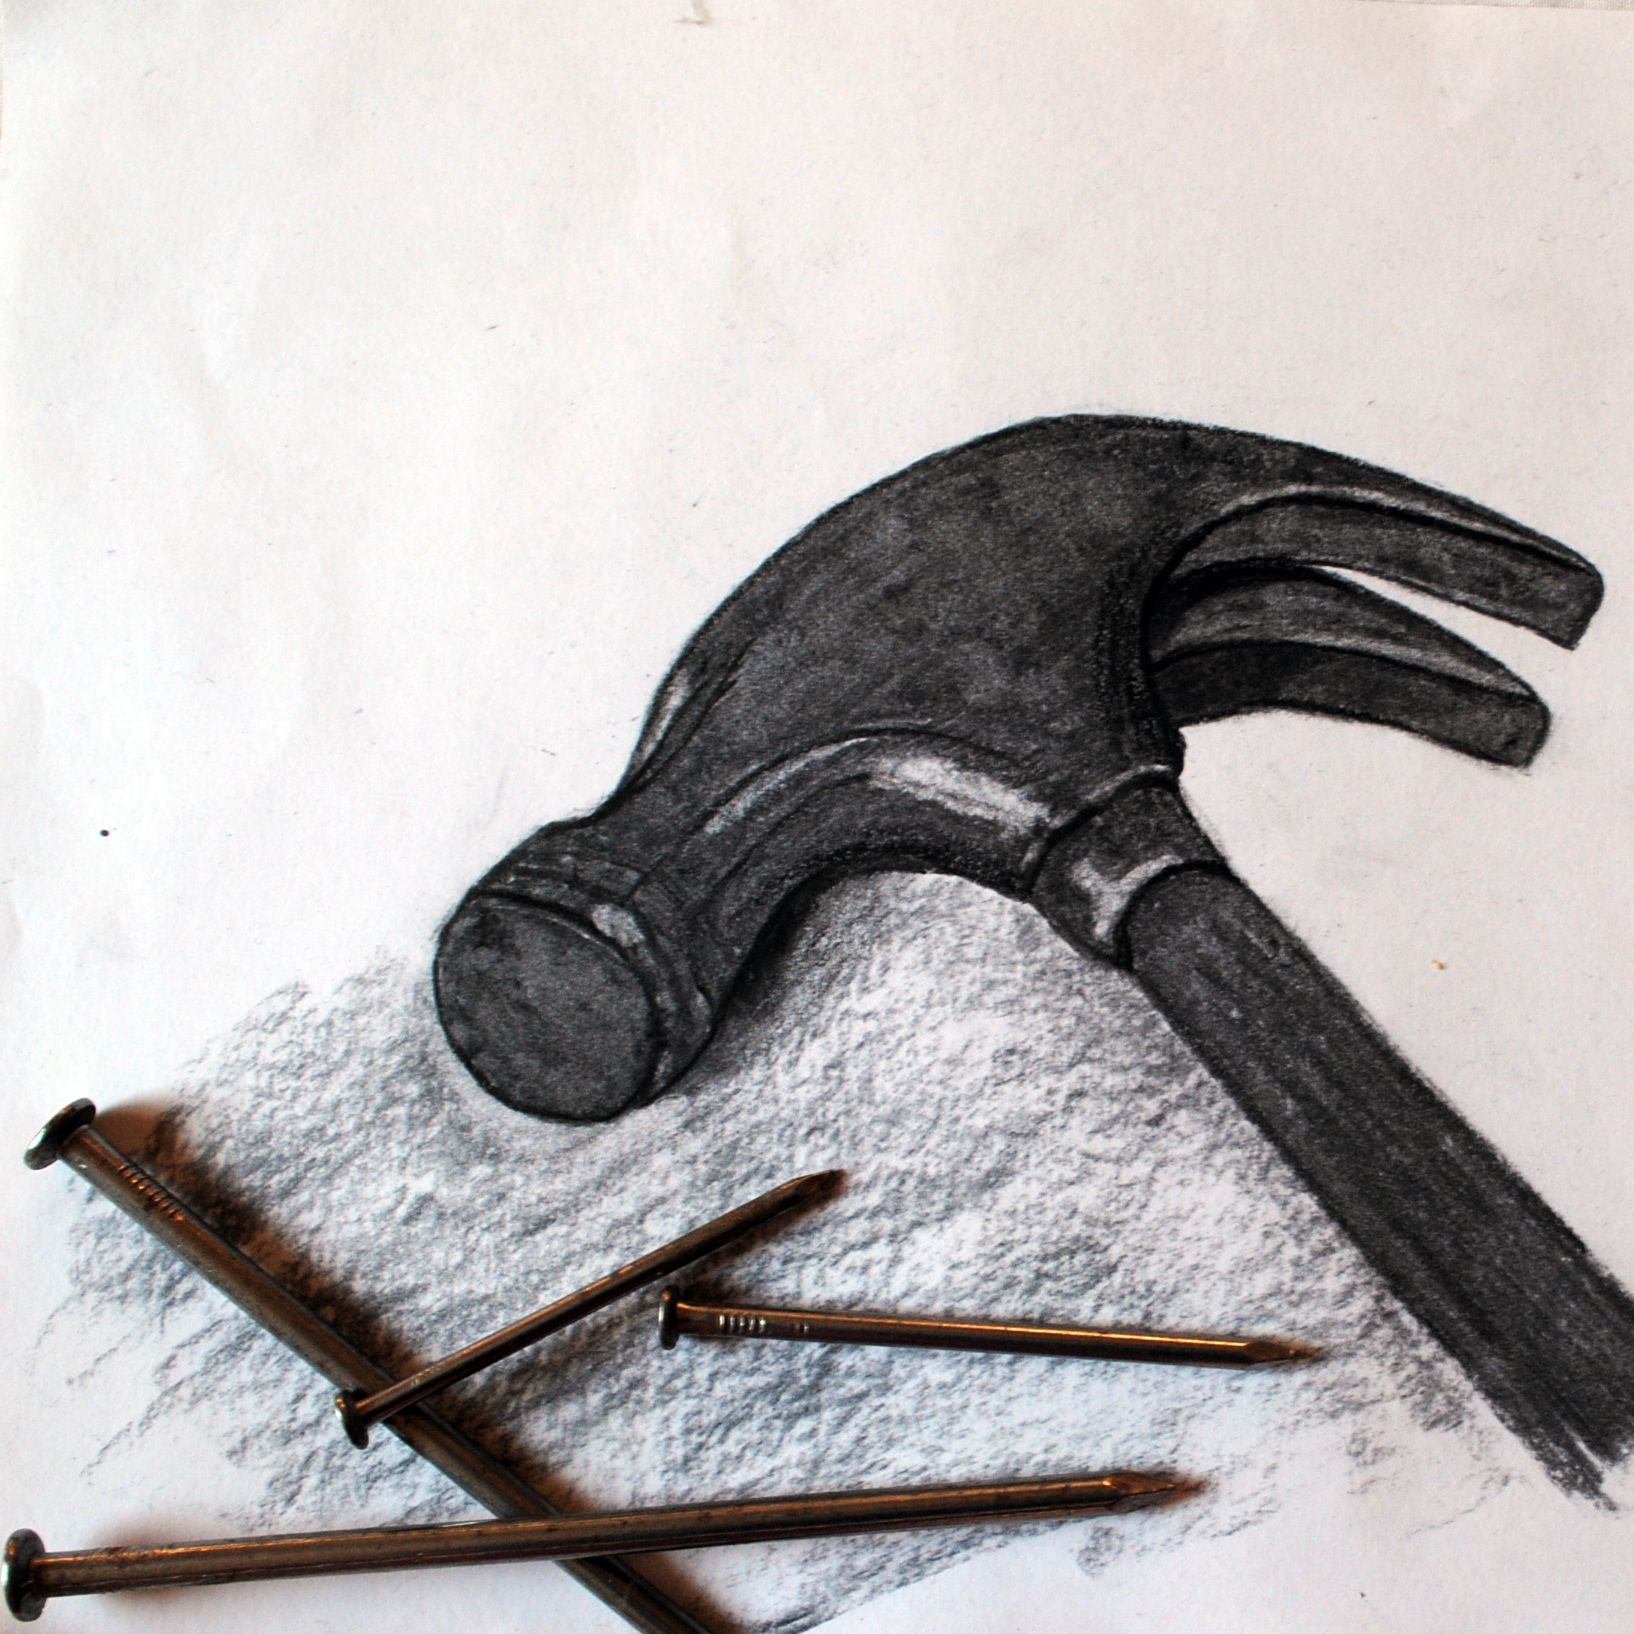 hammer and nails drawing. charcoal drawing of hammer and nails